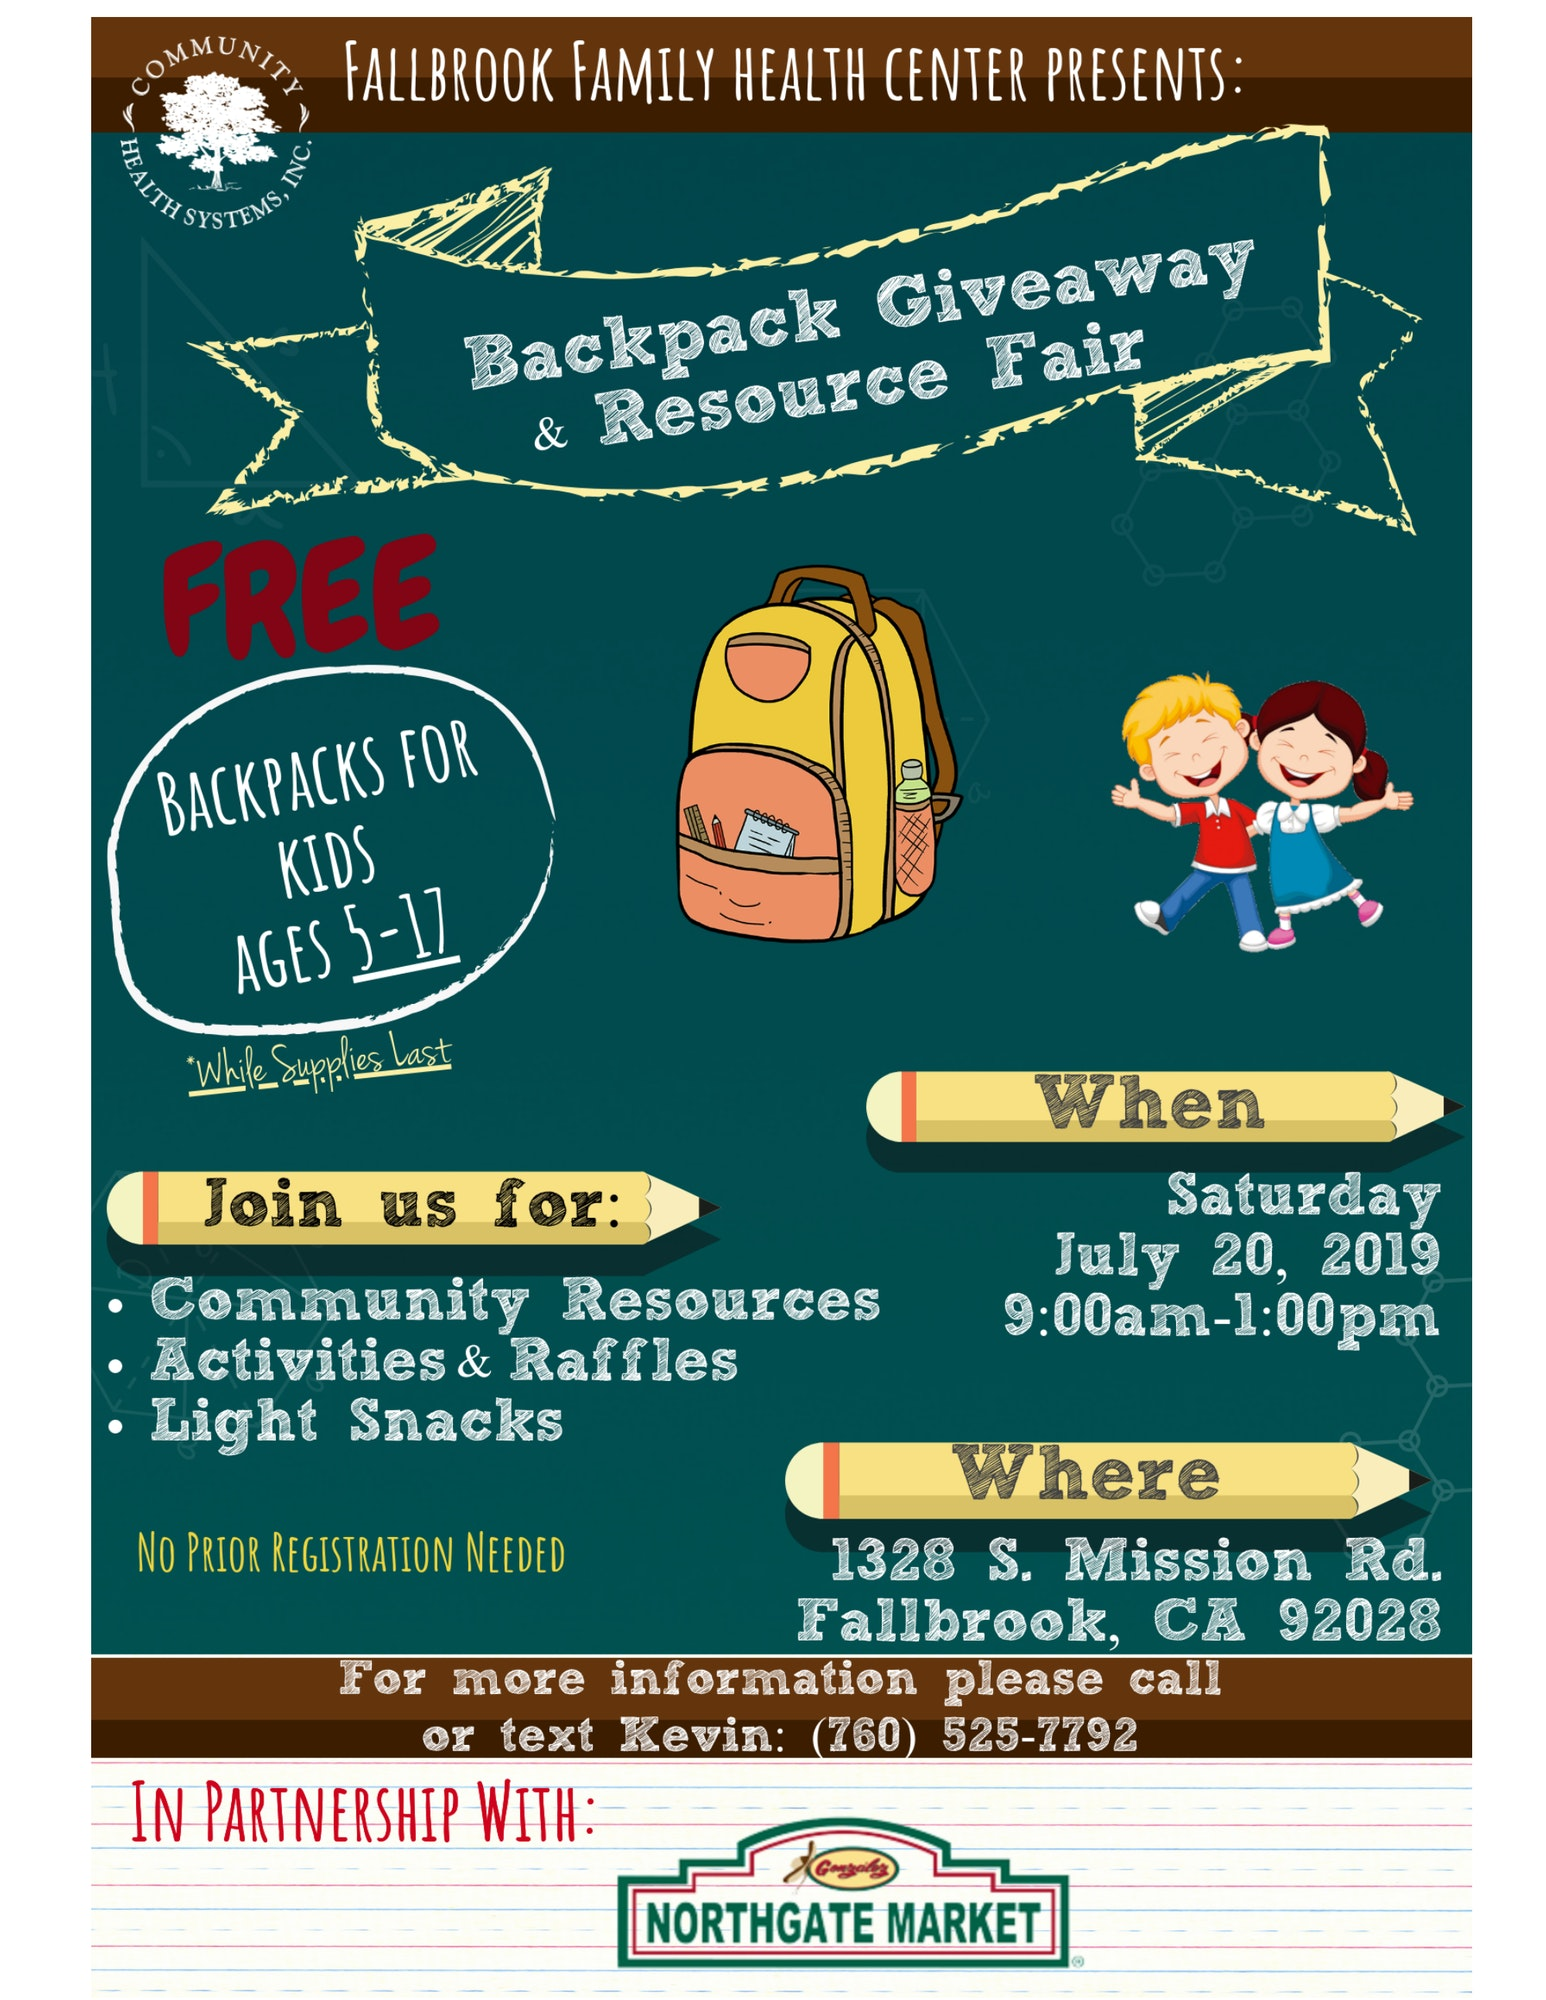 Backpack giveaway. 9am-1pm. Community resouces, activities, raffles, light snacks. 1328 S. Mission Rd., Fallbrook.